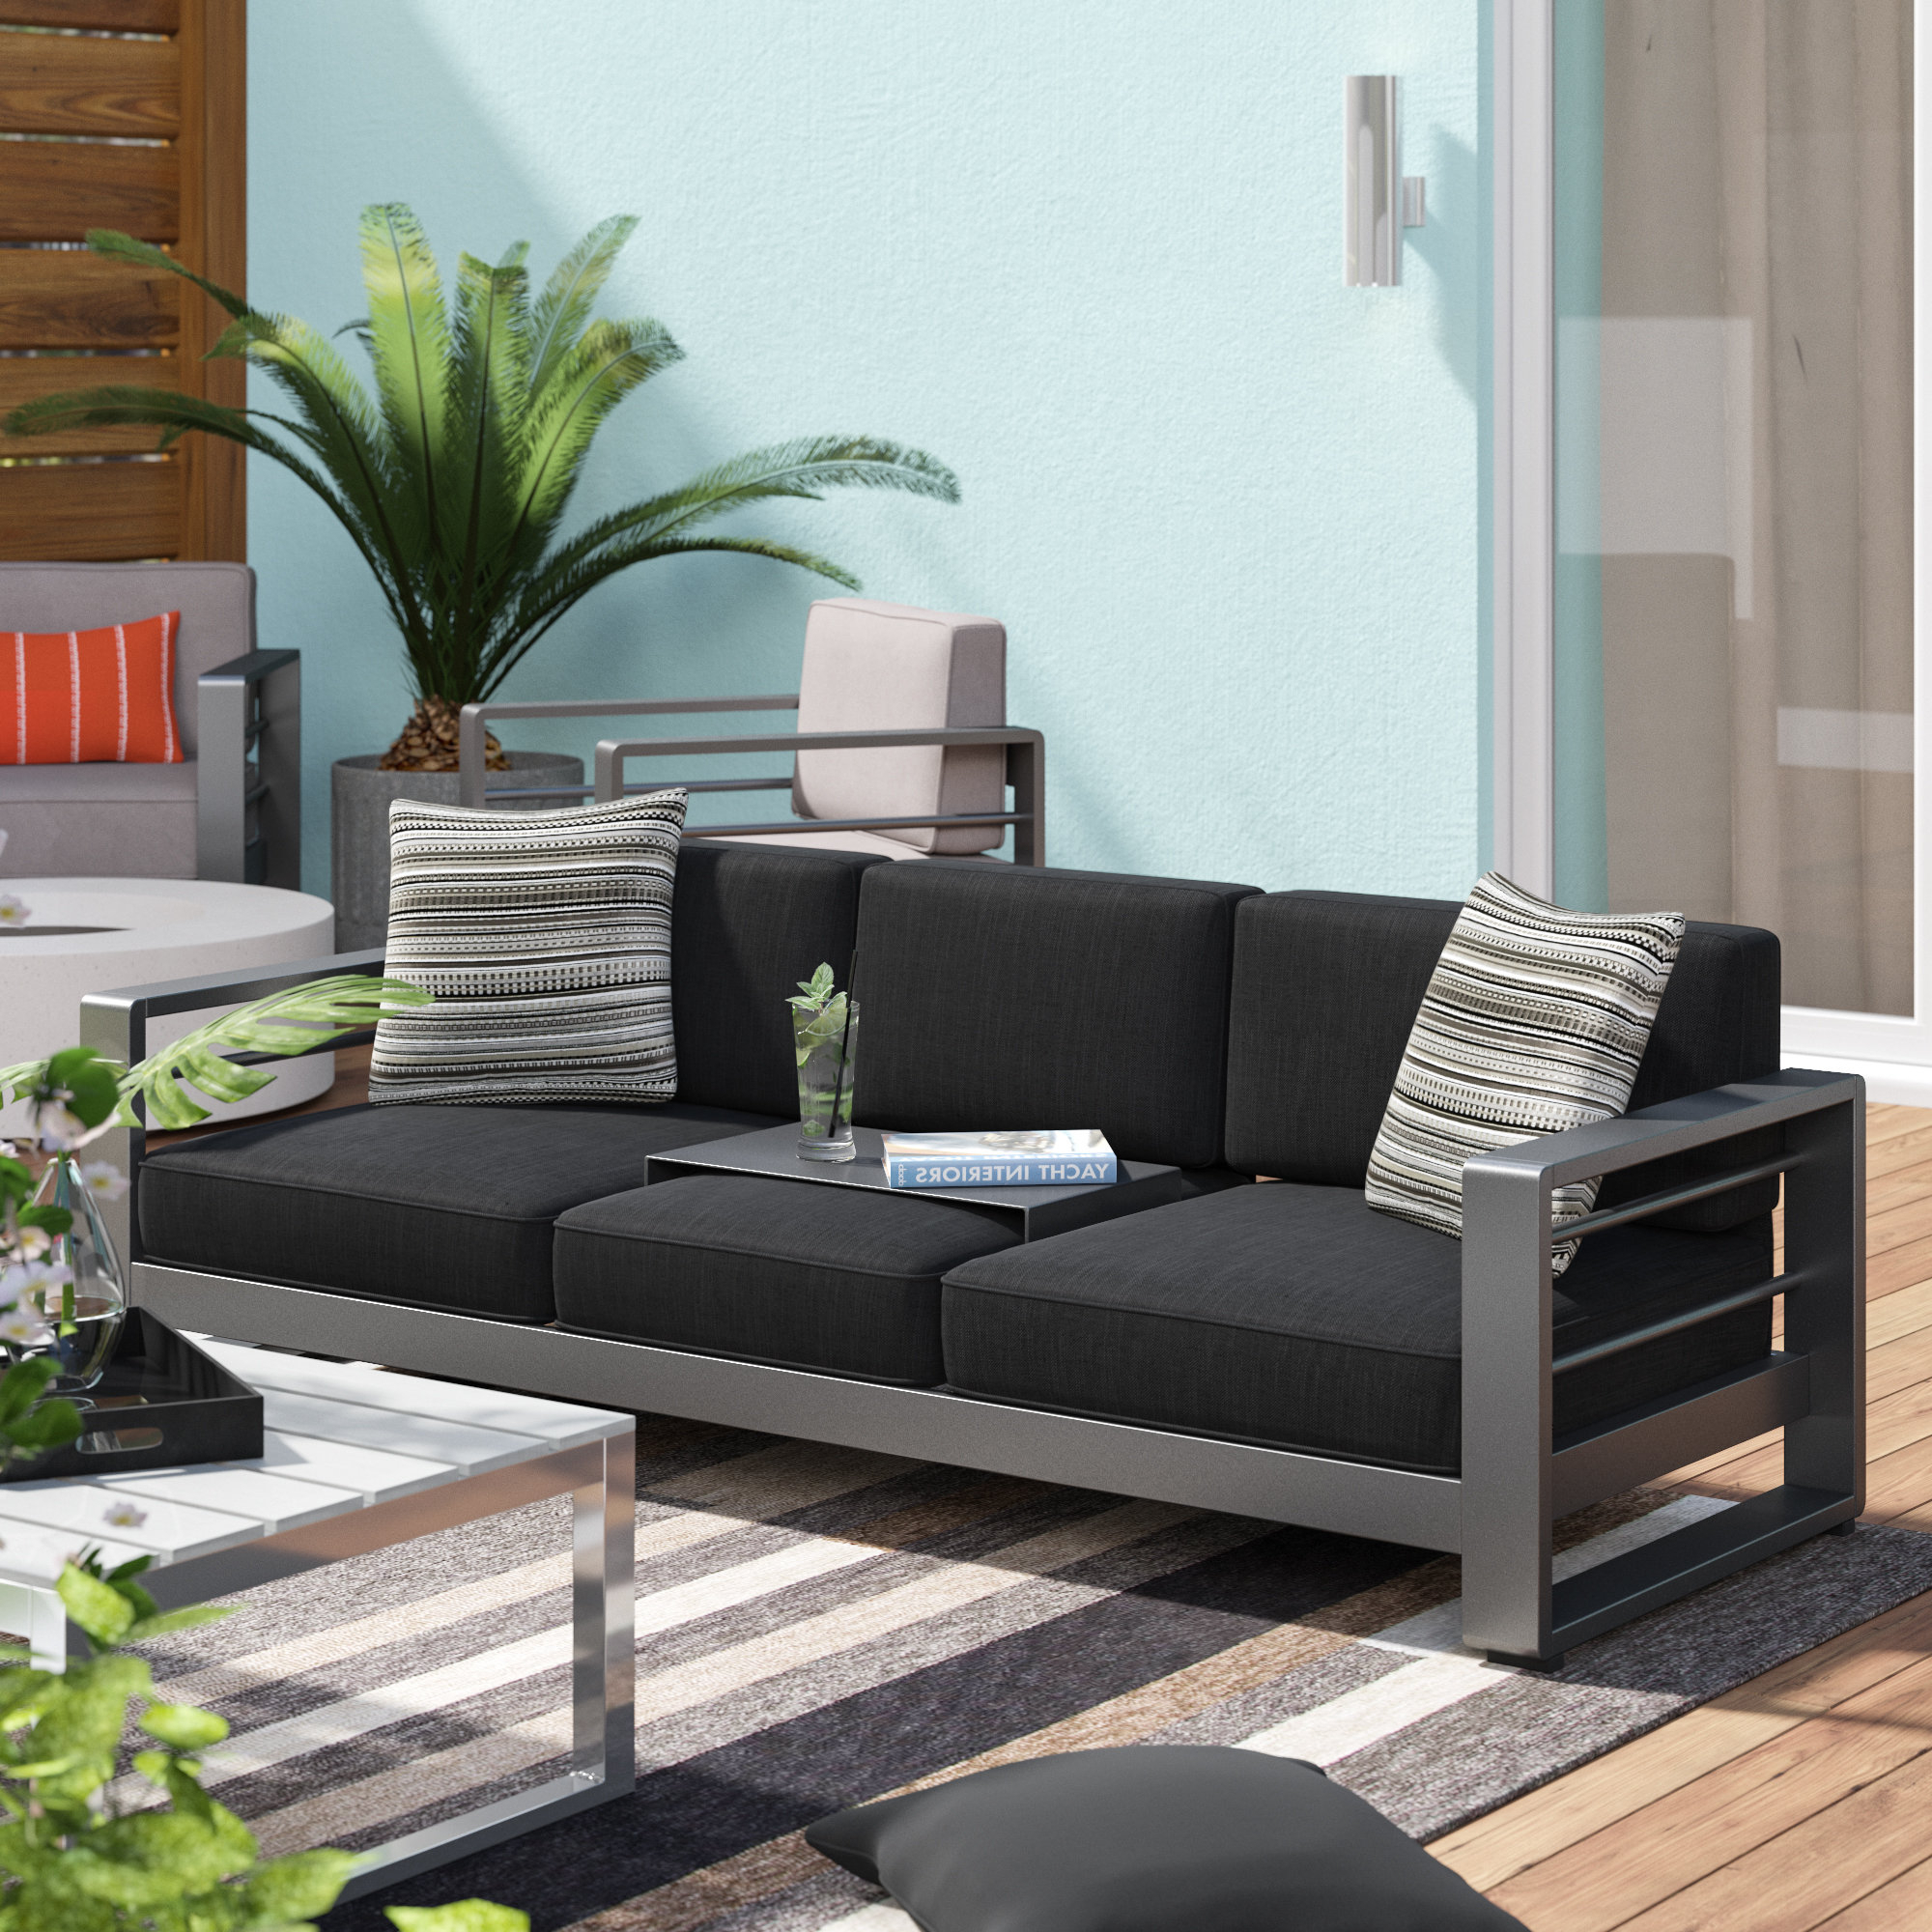 Well Liked Brayden Studio Royalston Patio Sofa With Cushions & Reviews Regarding Royalston Patio Sofas With Cushions (View 2 of 20)